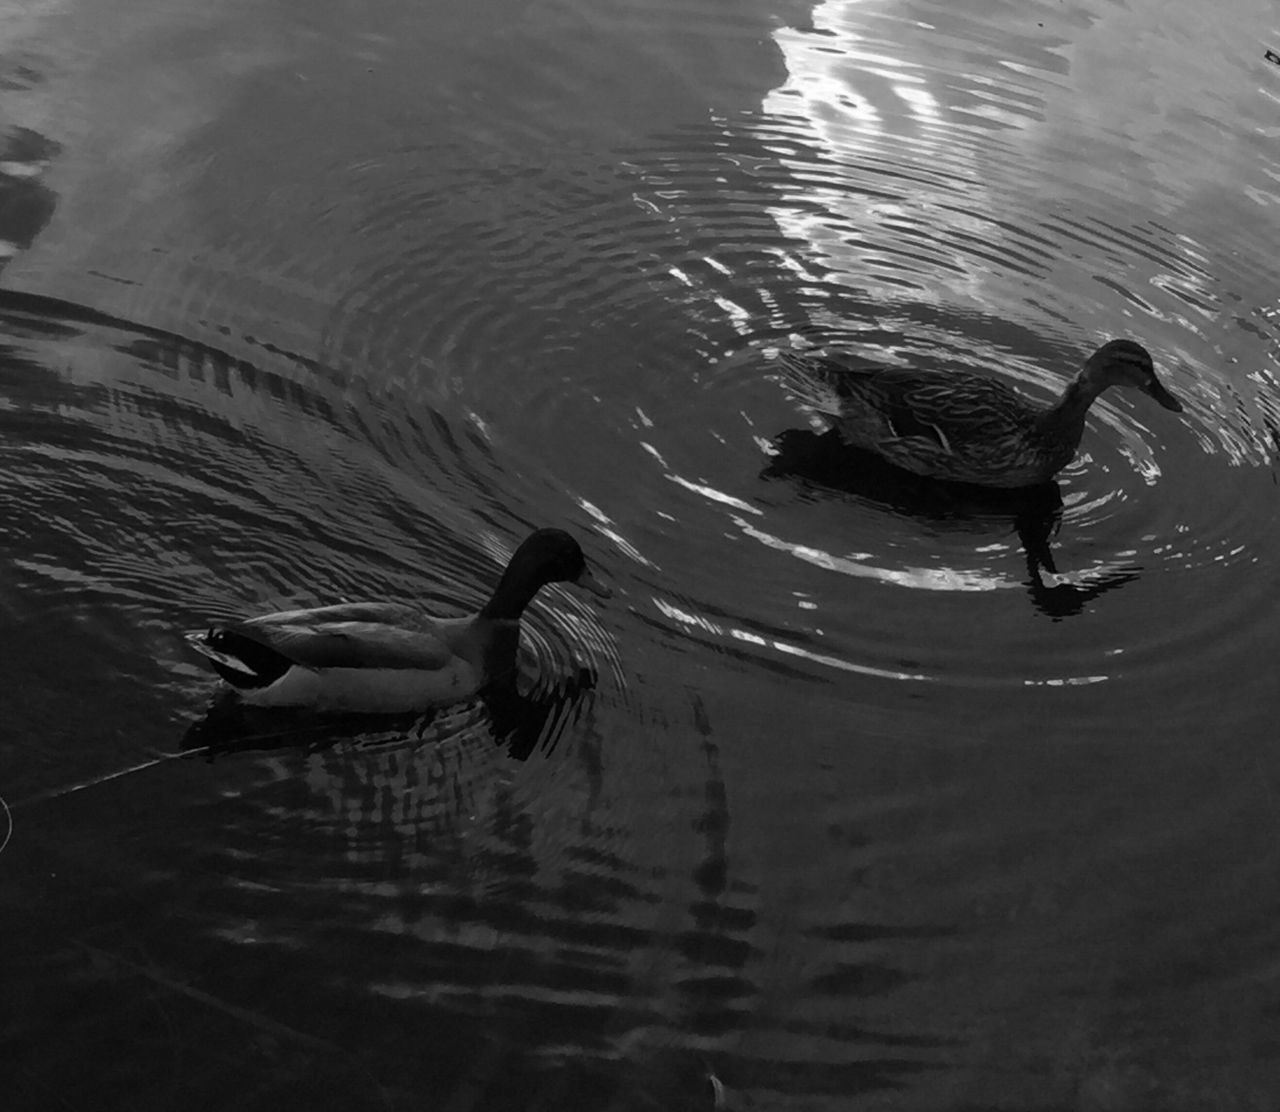 Ducks Mallard Pond Water Ripples Water Fowell Orlando Florida Nature